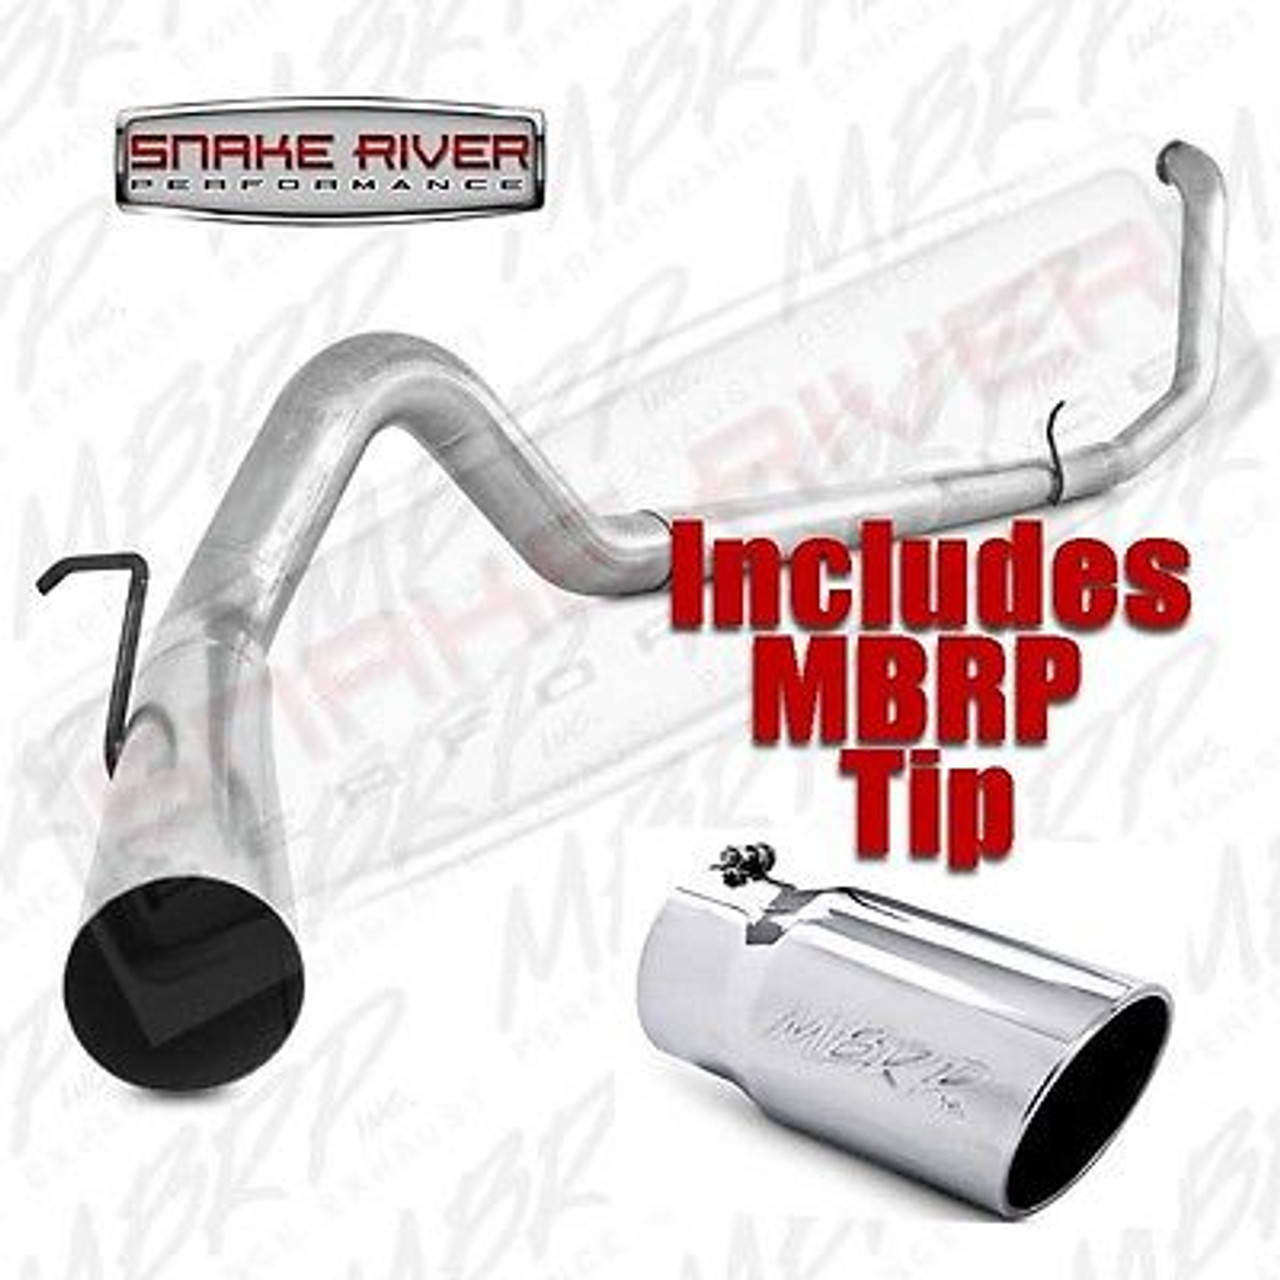 mbrp 4 exhaust 99 03 ford powerstroke diesel 7 3l w stainless tip s6200plm t5051